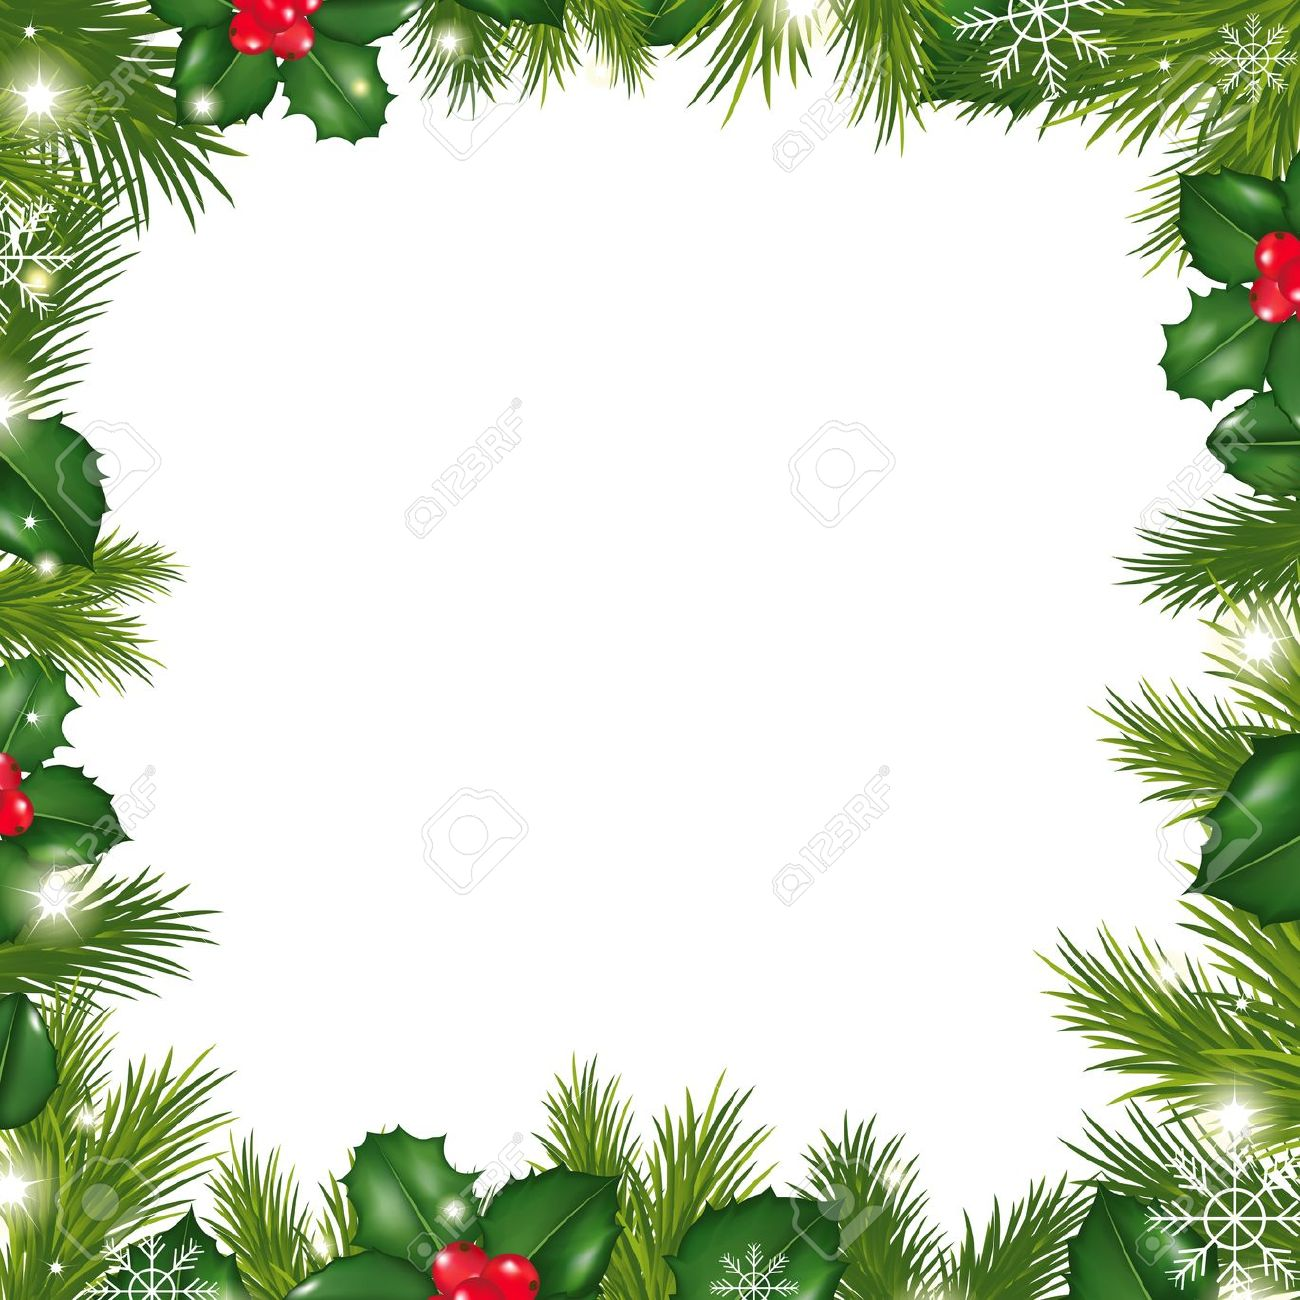 1300x1300 Christmas Wreath Border. Free Christmas Wreath Clipart Kid. Like